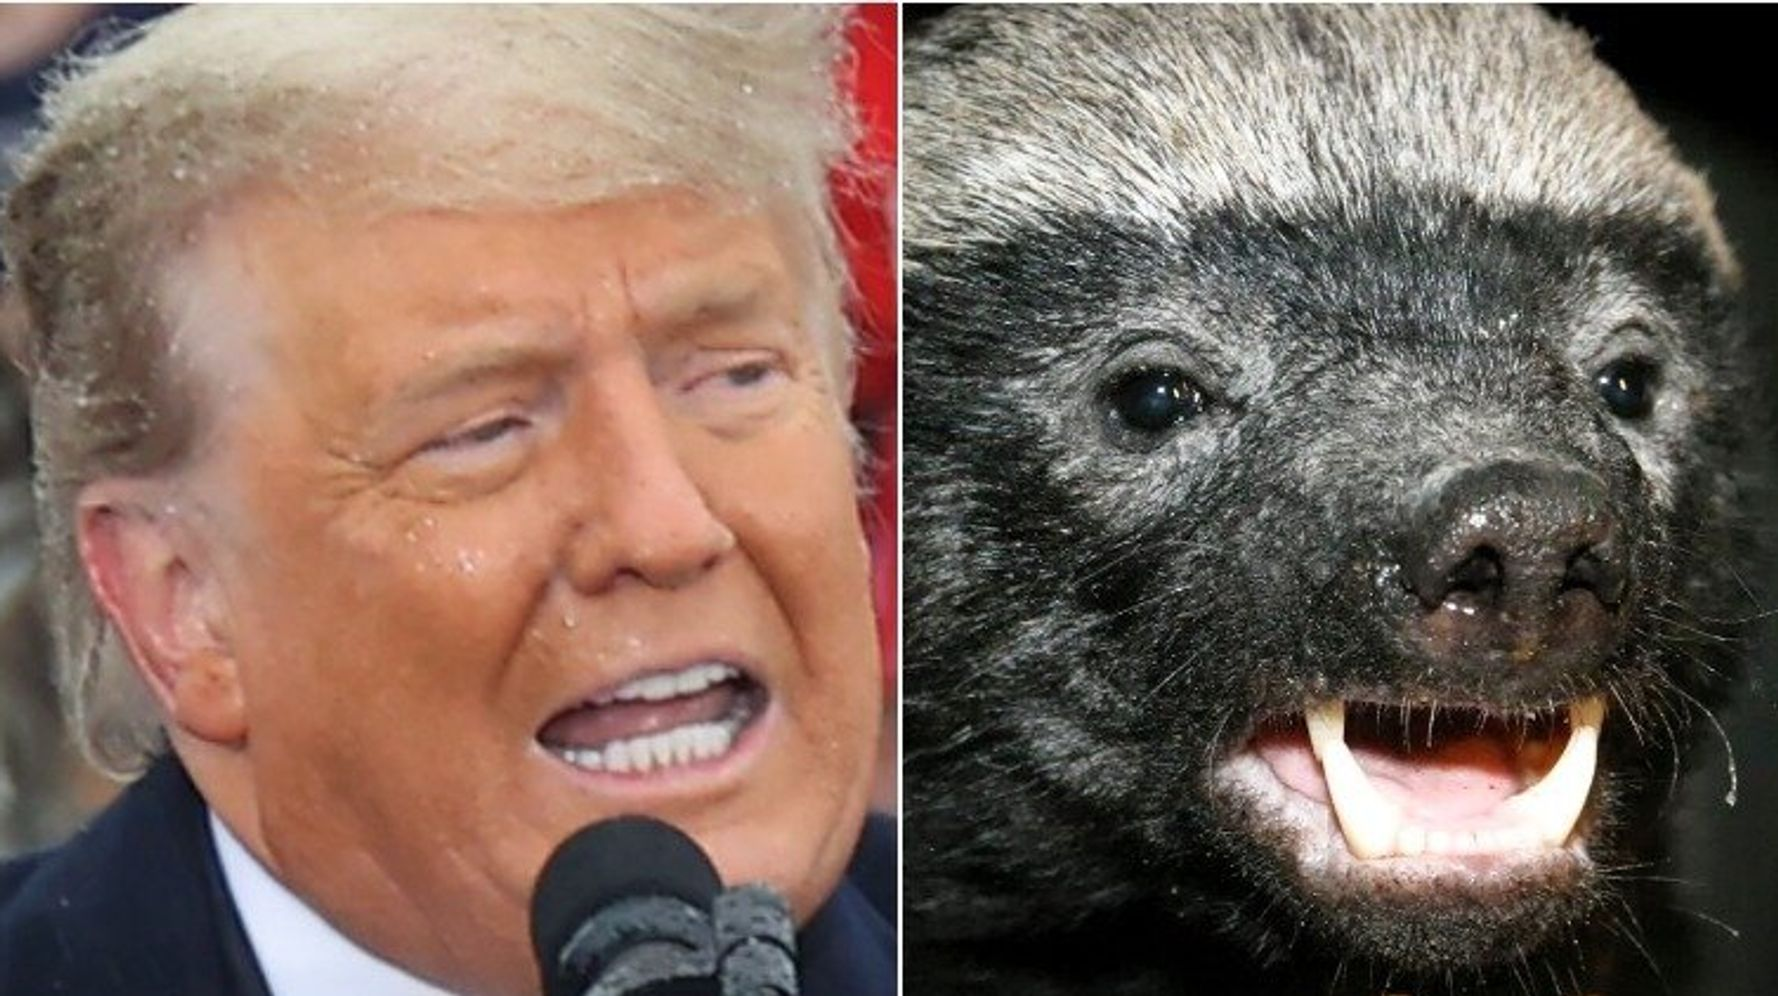 Lincoln Project Gives 'Covey Spreader' Trump The Honey Badger Treatment